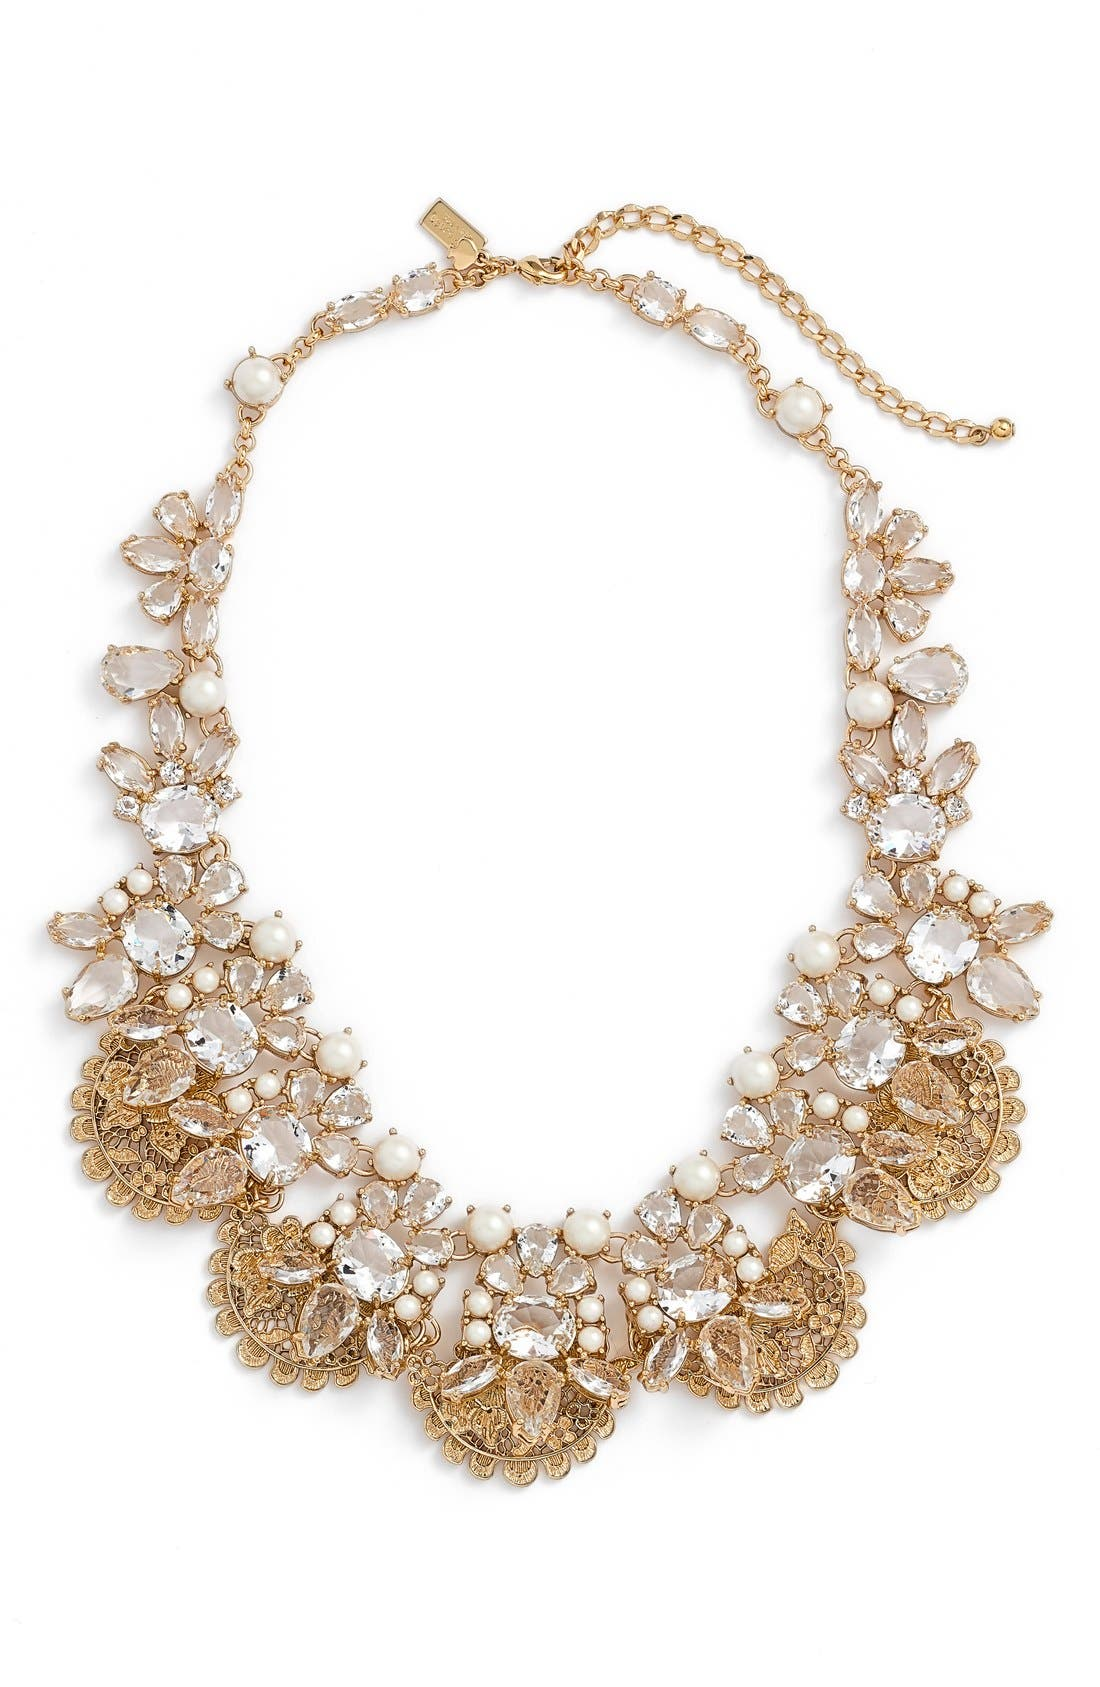 Main Image - kate spade new york 'chantilly gems' statement necklace